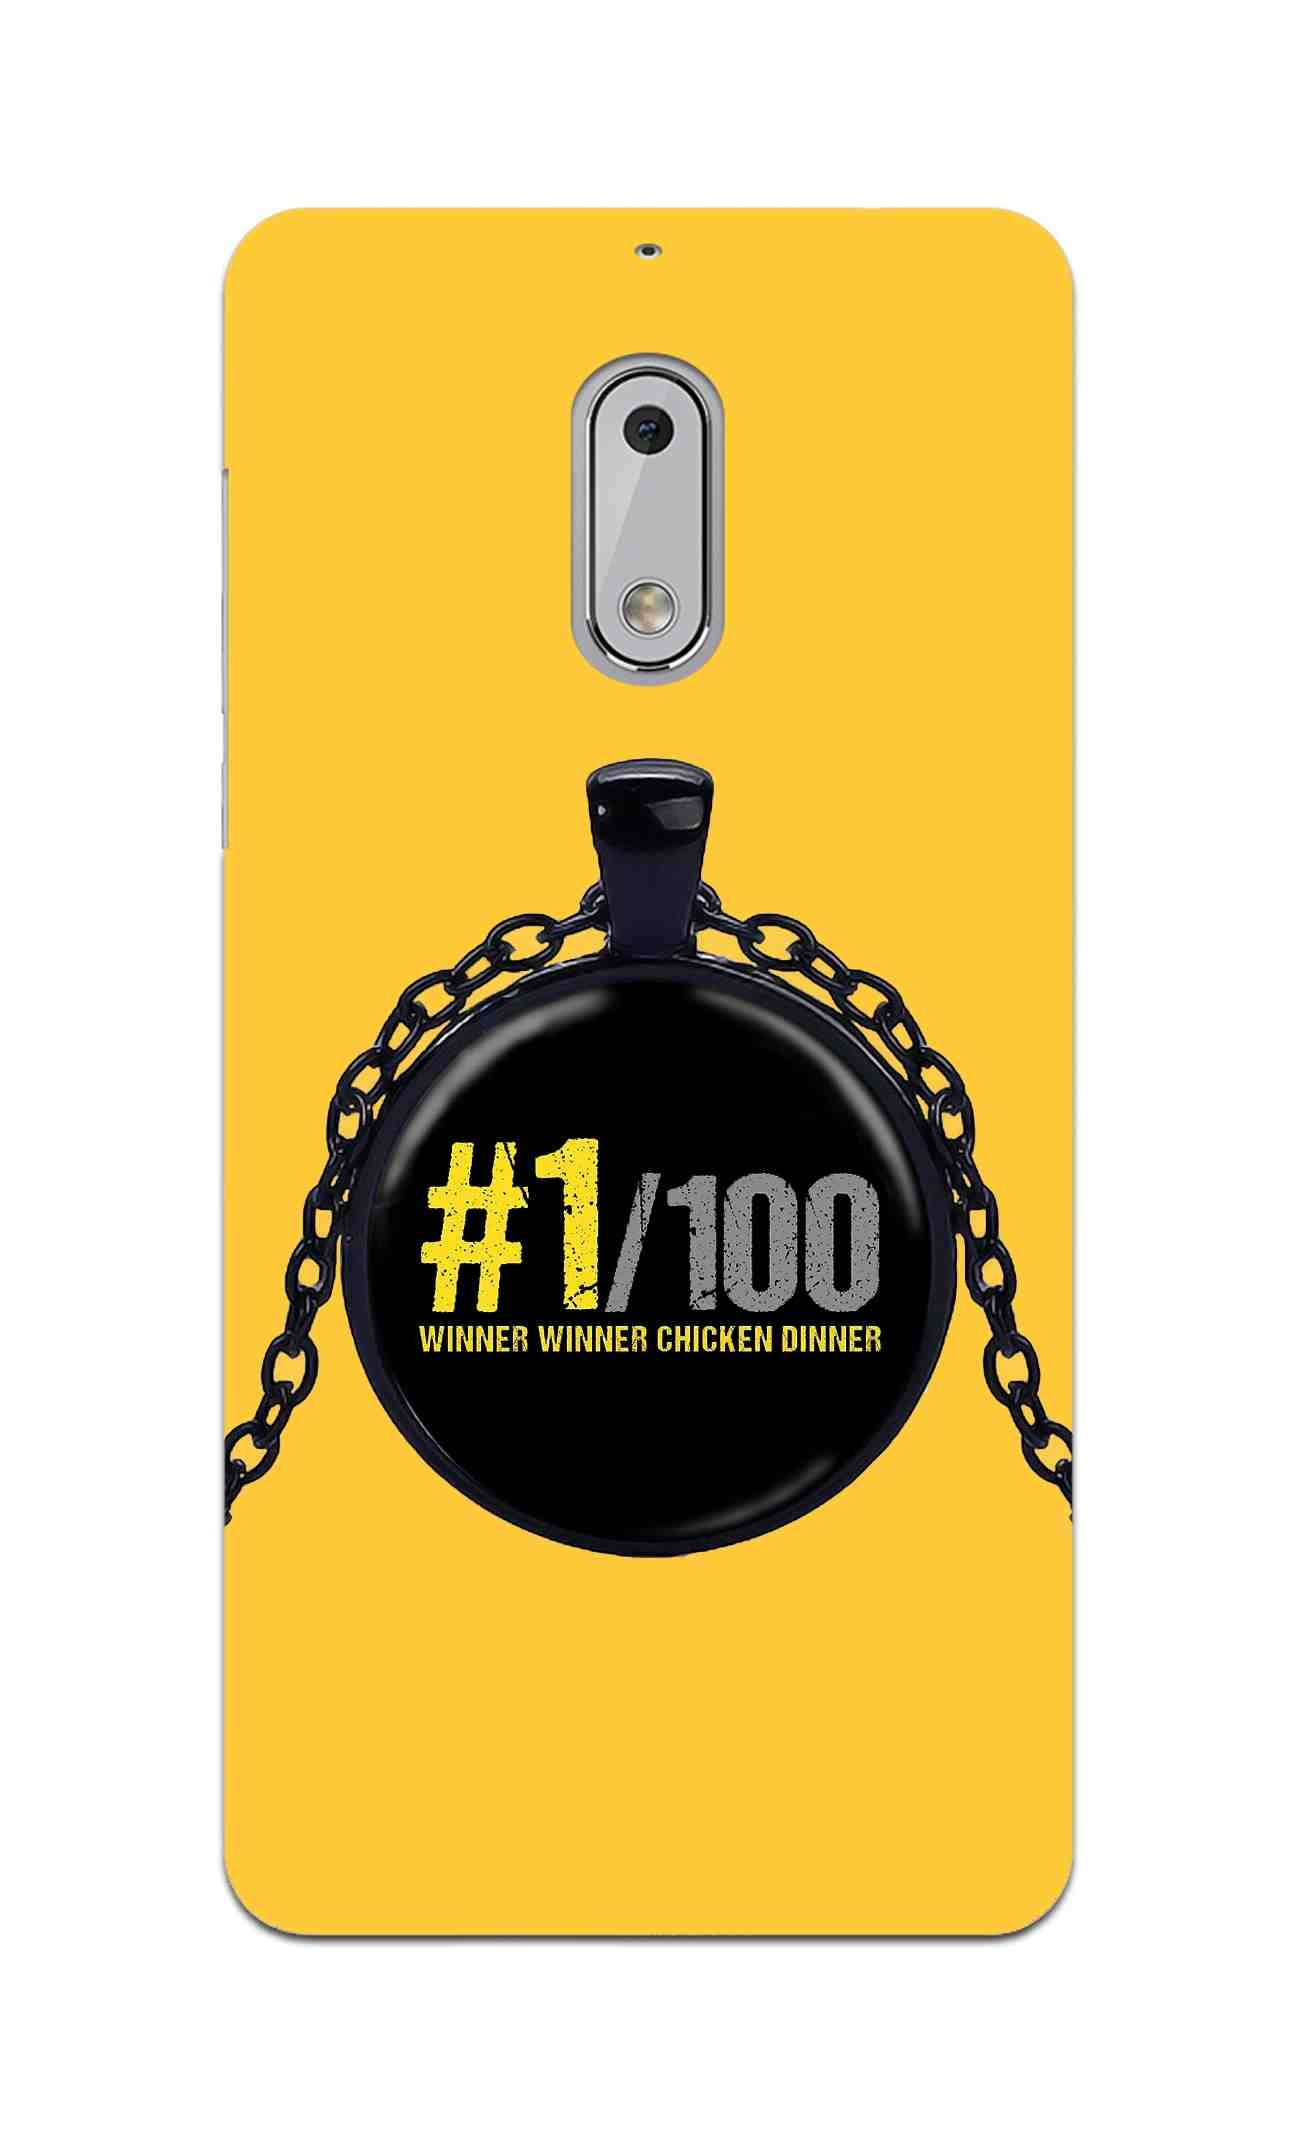 Only One Can Servive Out Of 100 Typography Art Nokia 6 Mobile Cover Case